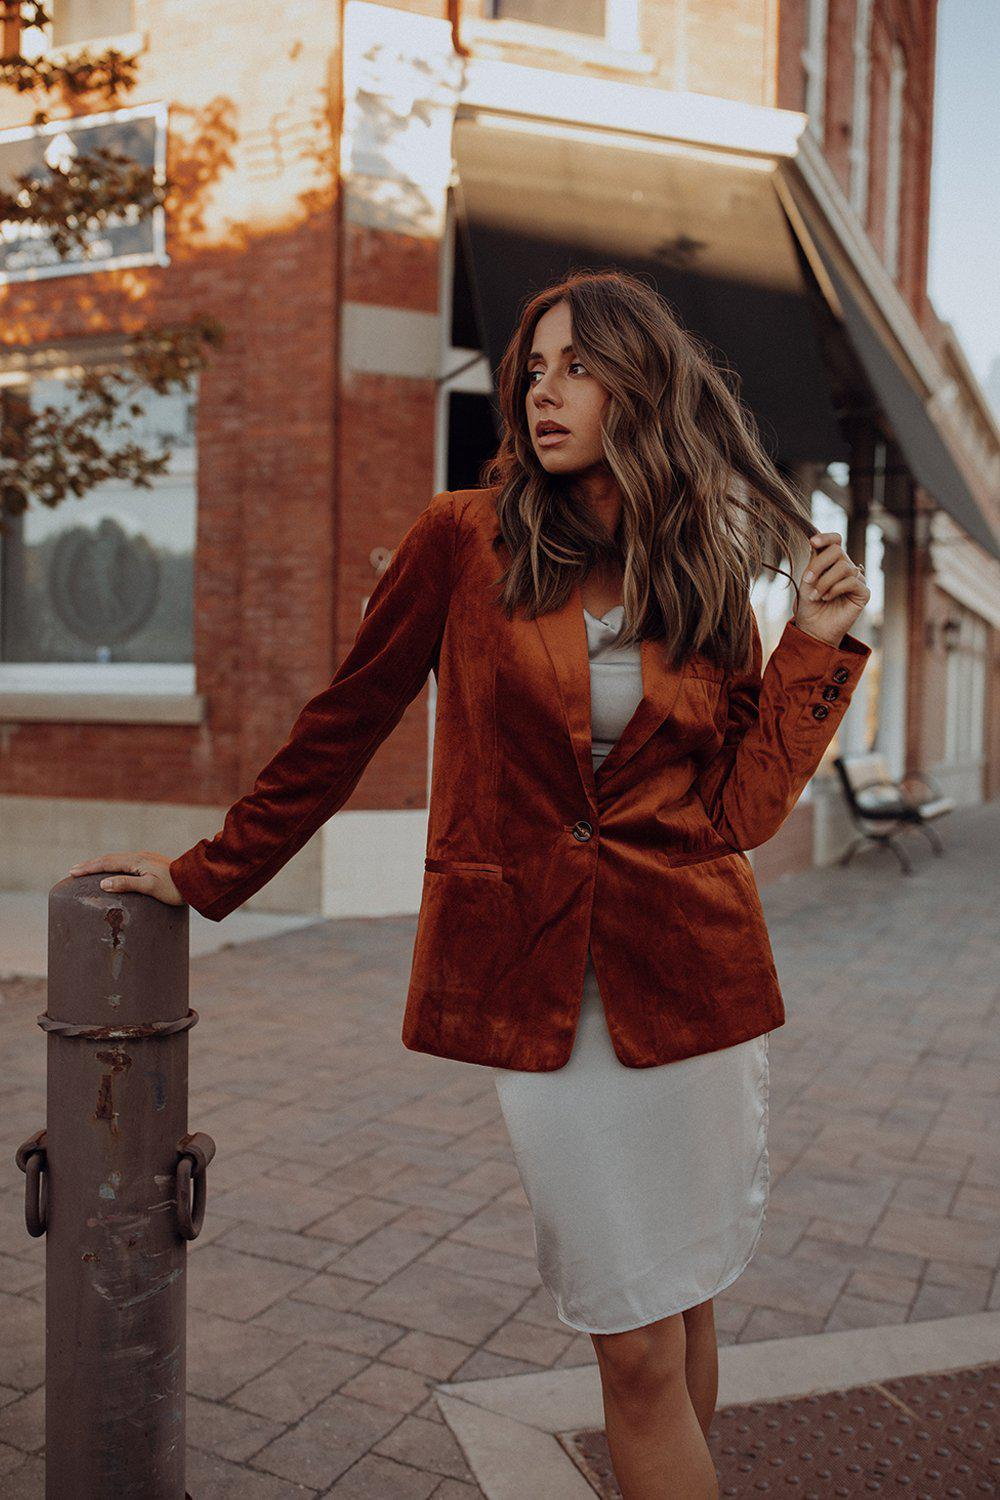 best_seller, Spice Spice Baby Blazer - FINAL SALE, Top, women's clothing, dresses, skirts, coats, jackets, shoes, boots, tops, tee shirts, jeans, free people, levi's, rollas, jumpsuits, bottoms, tops, sweaters, pullovers, pants, shorts, sweats,.